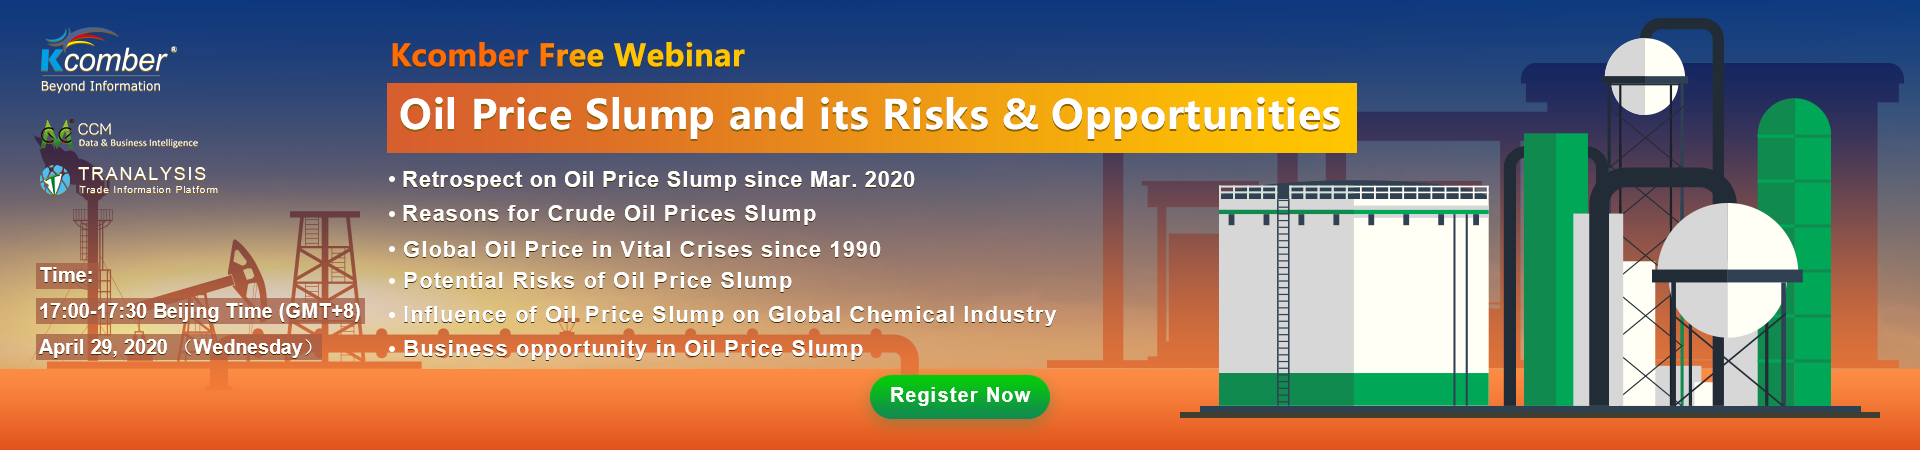 Oil Price Slump and its Risks & Opportunities